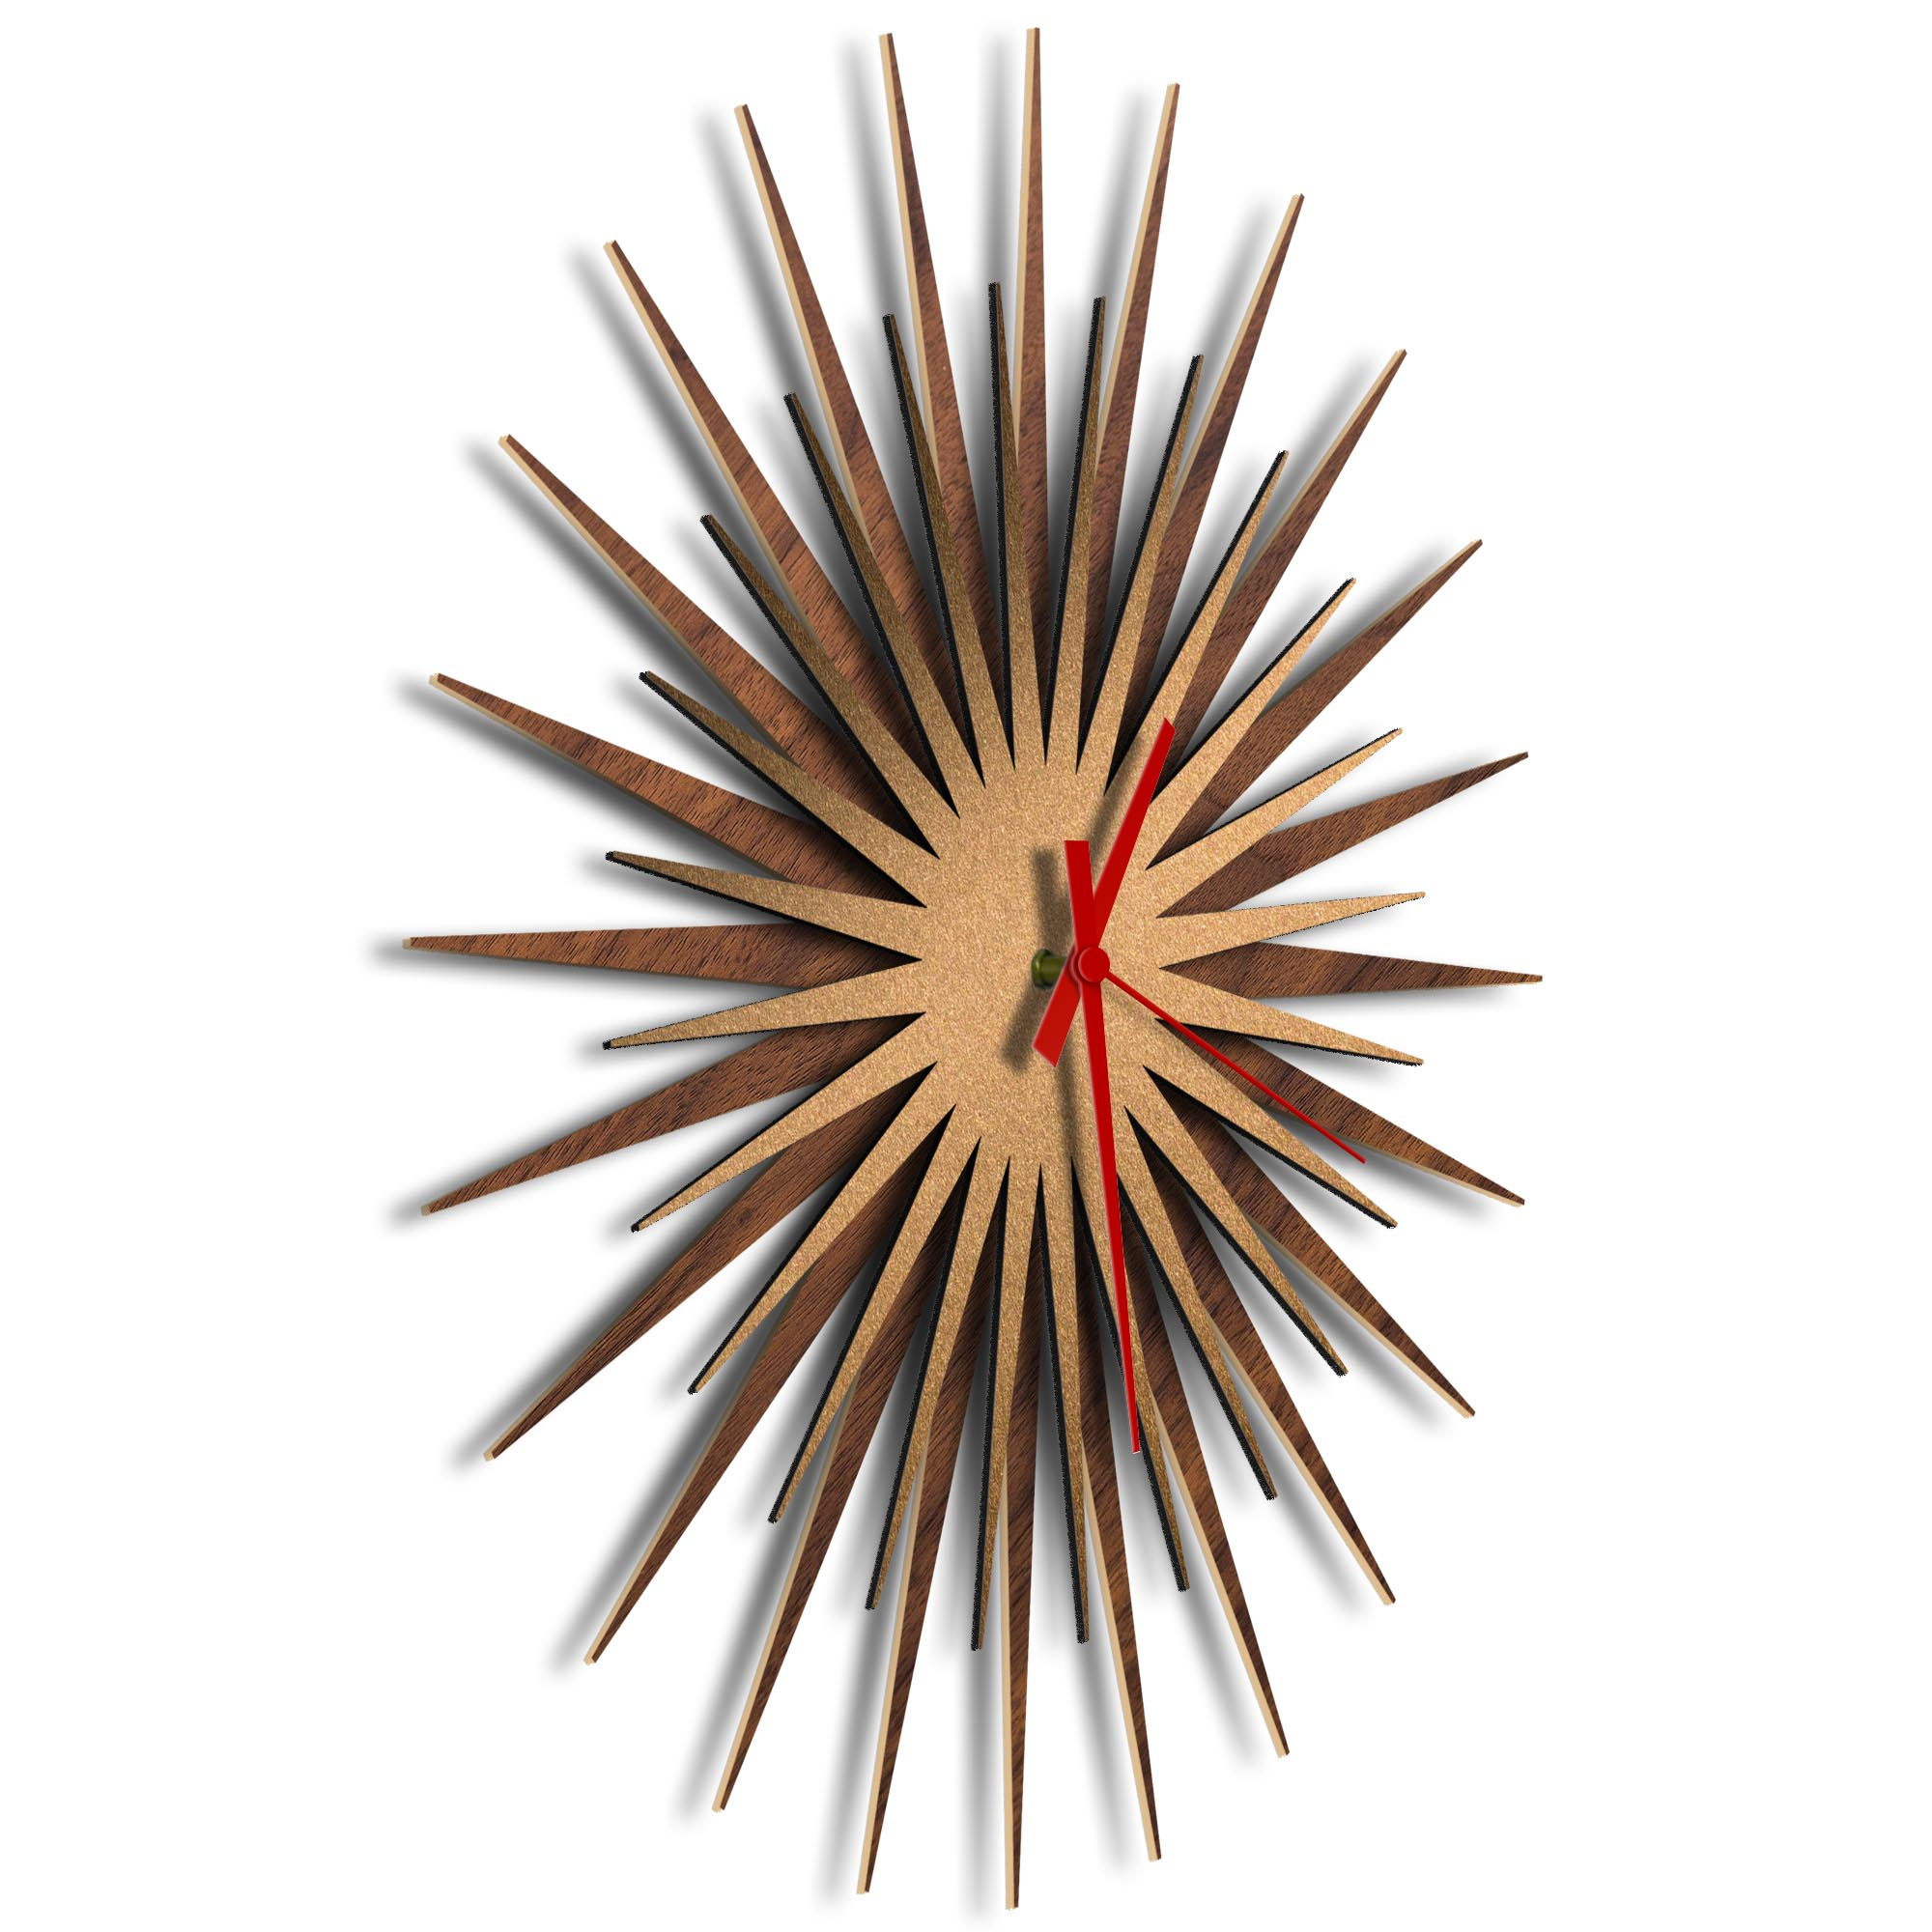 Atomic Era Clock Walnut Bronze Red by Adam Schwoeppe - Mid-Century Modern Clock on Brushed Walnut Polymetal - Image 2